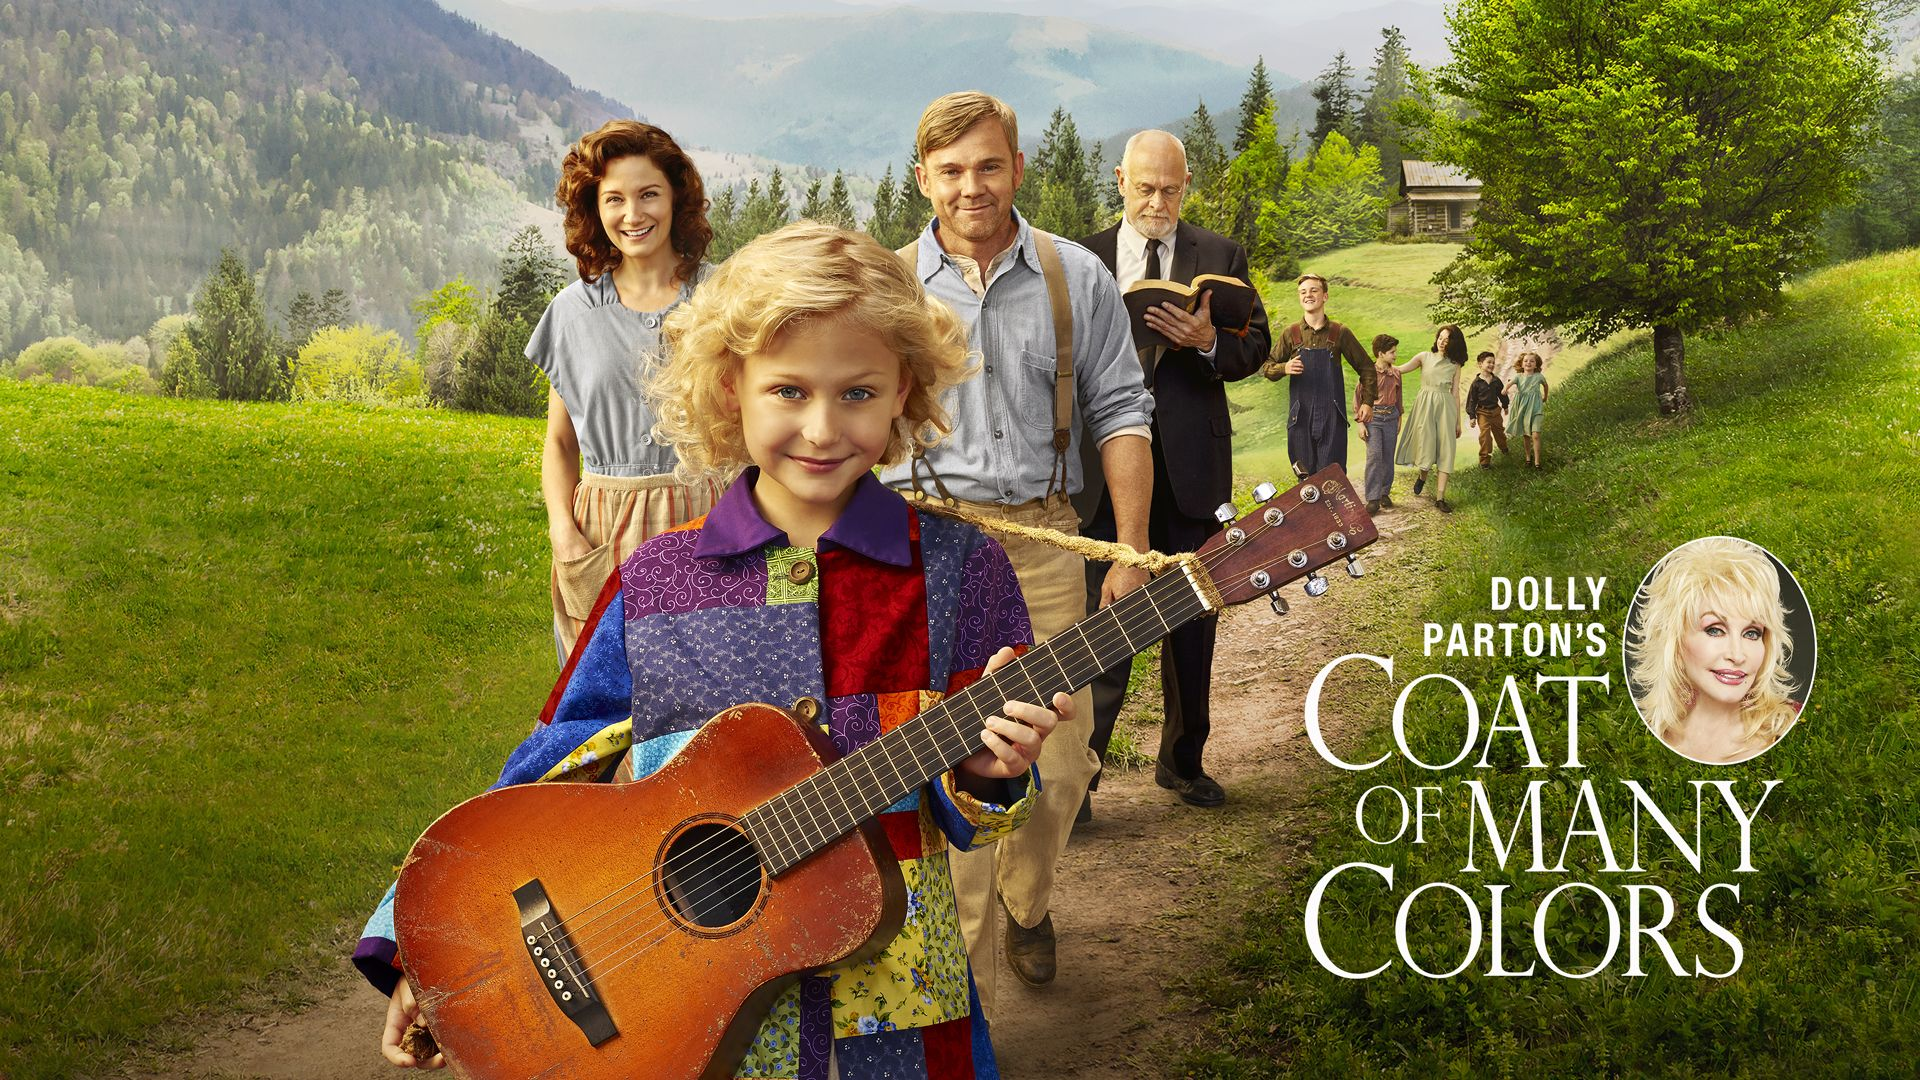 watch thurs dec 10 at alyvia alyn lind stars as young dolly parton in the inspiring true story based on her life coat of many colors - Dolly Parton Coat Of Many Colors Book